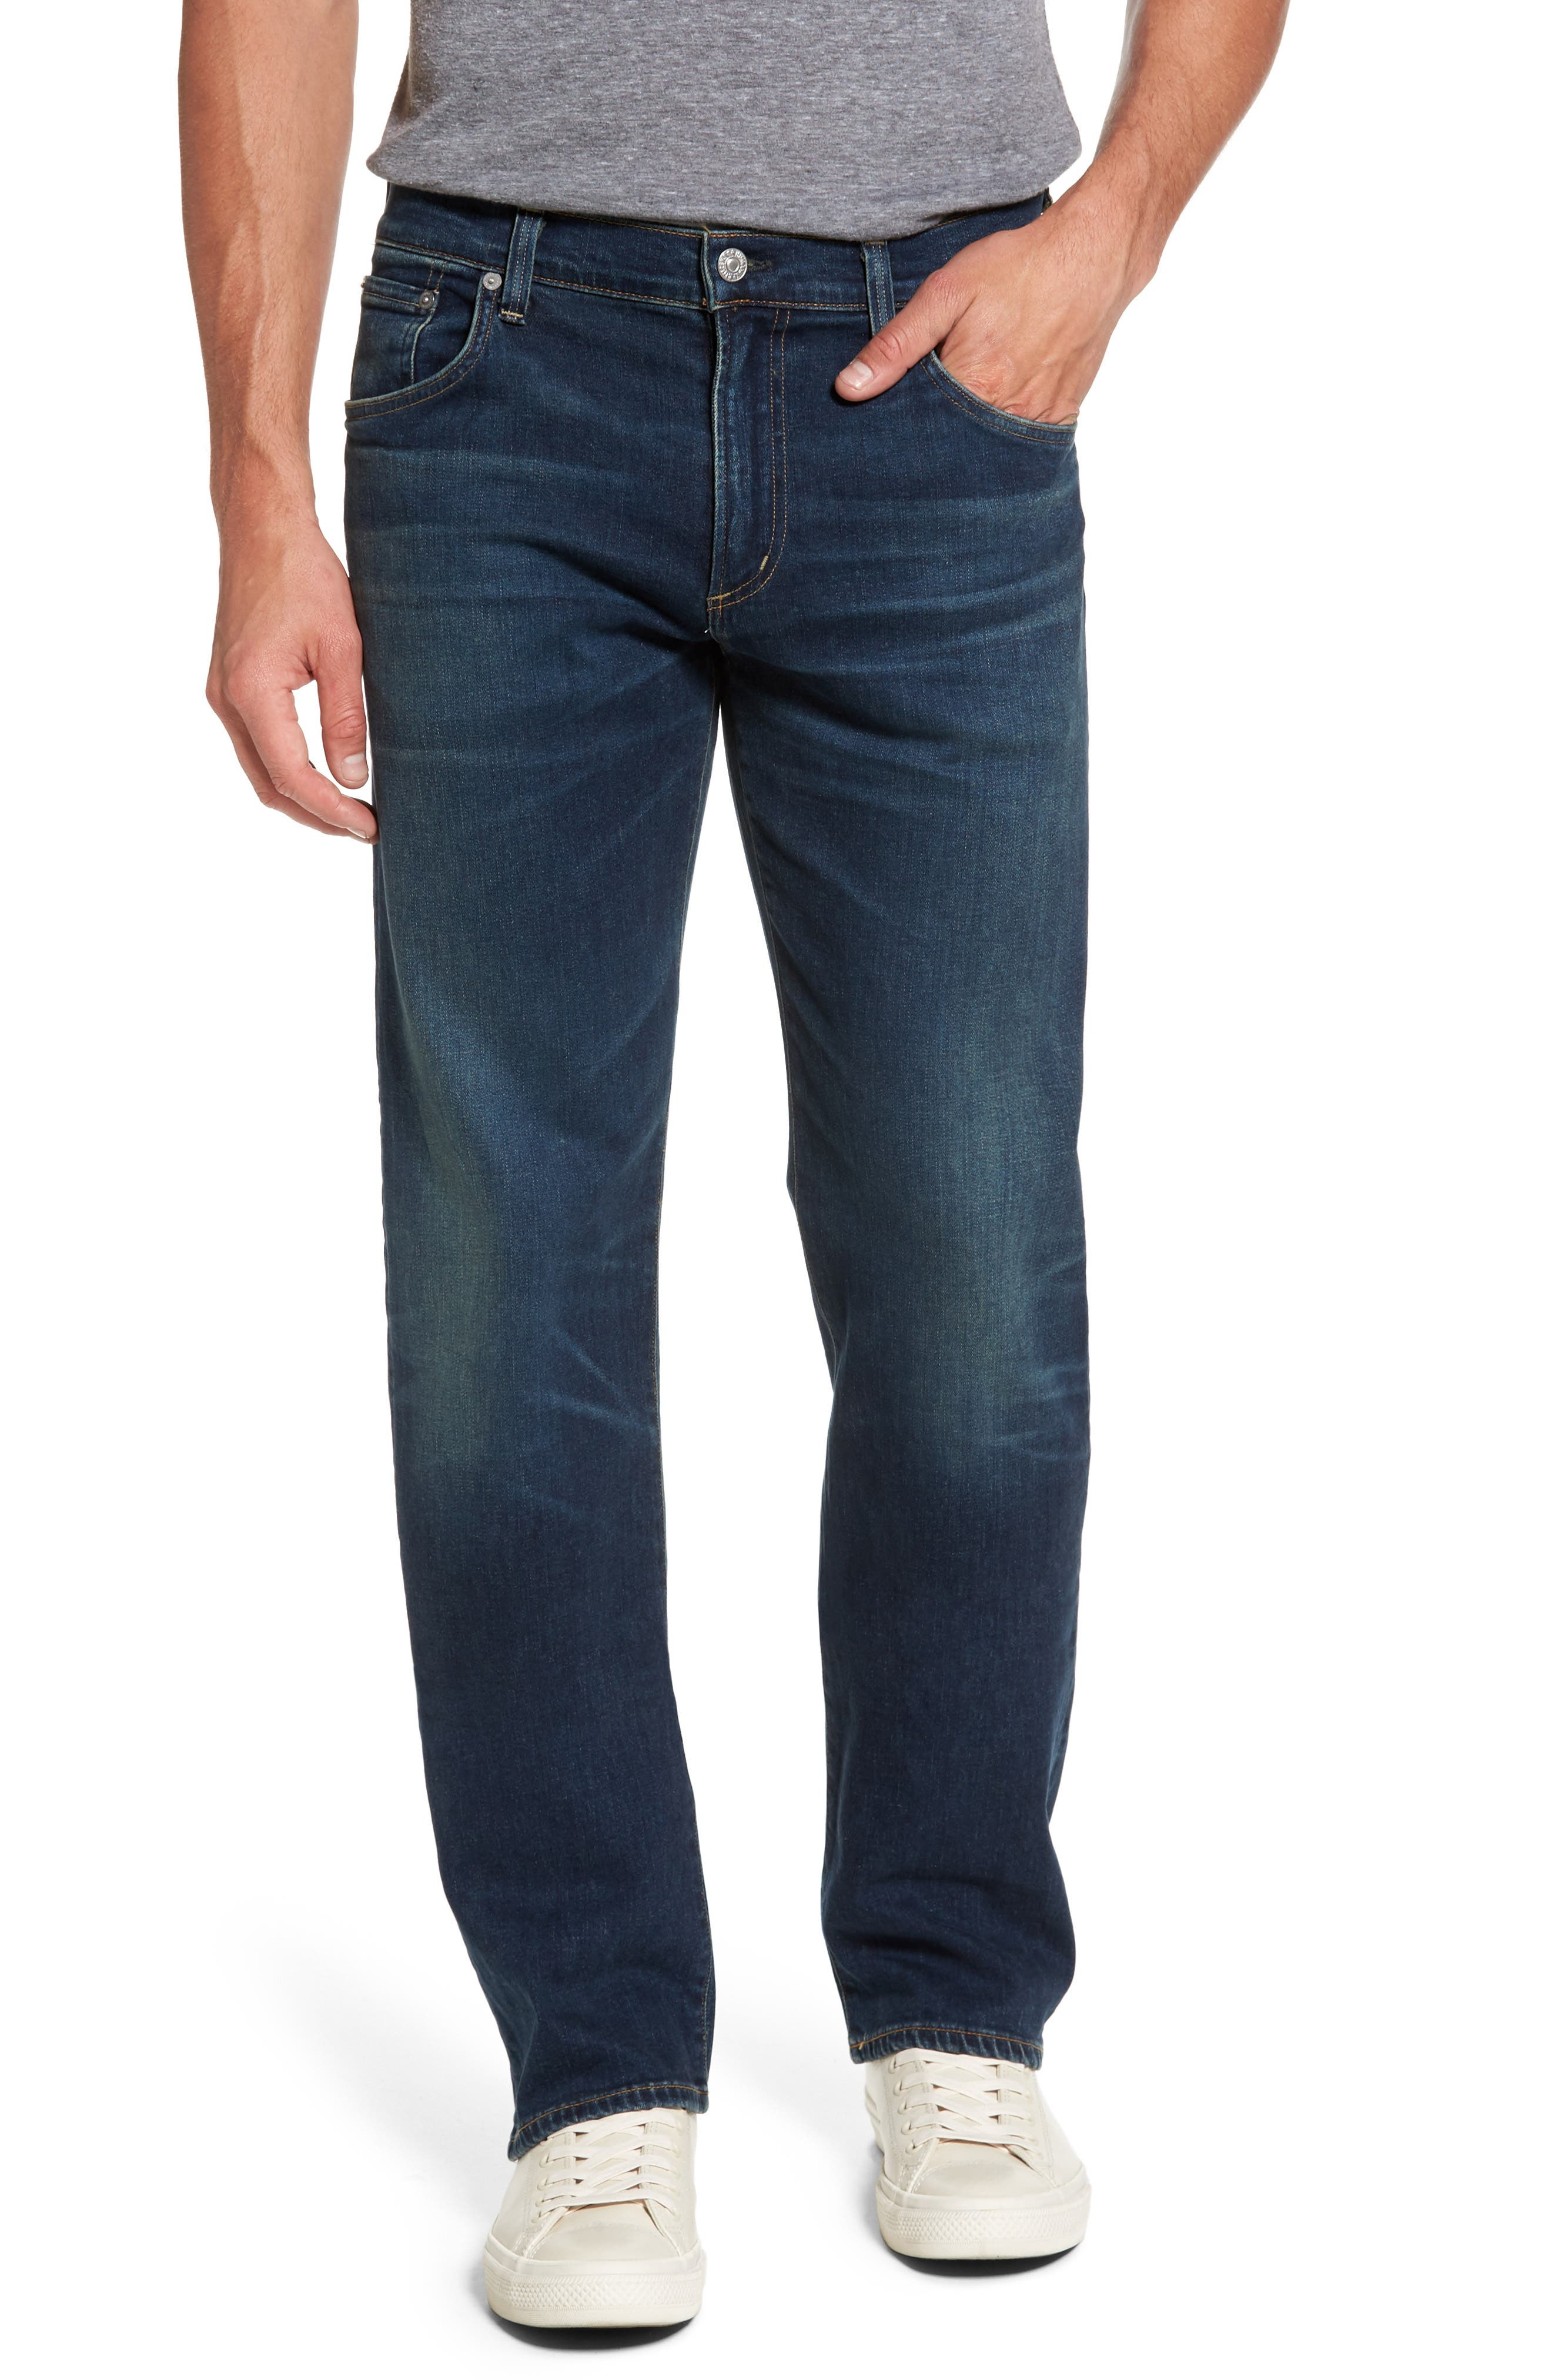 Sid Straight Leg Jeans,                             Main thumbnail 1, color,                             402